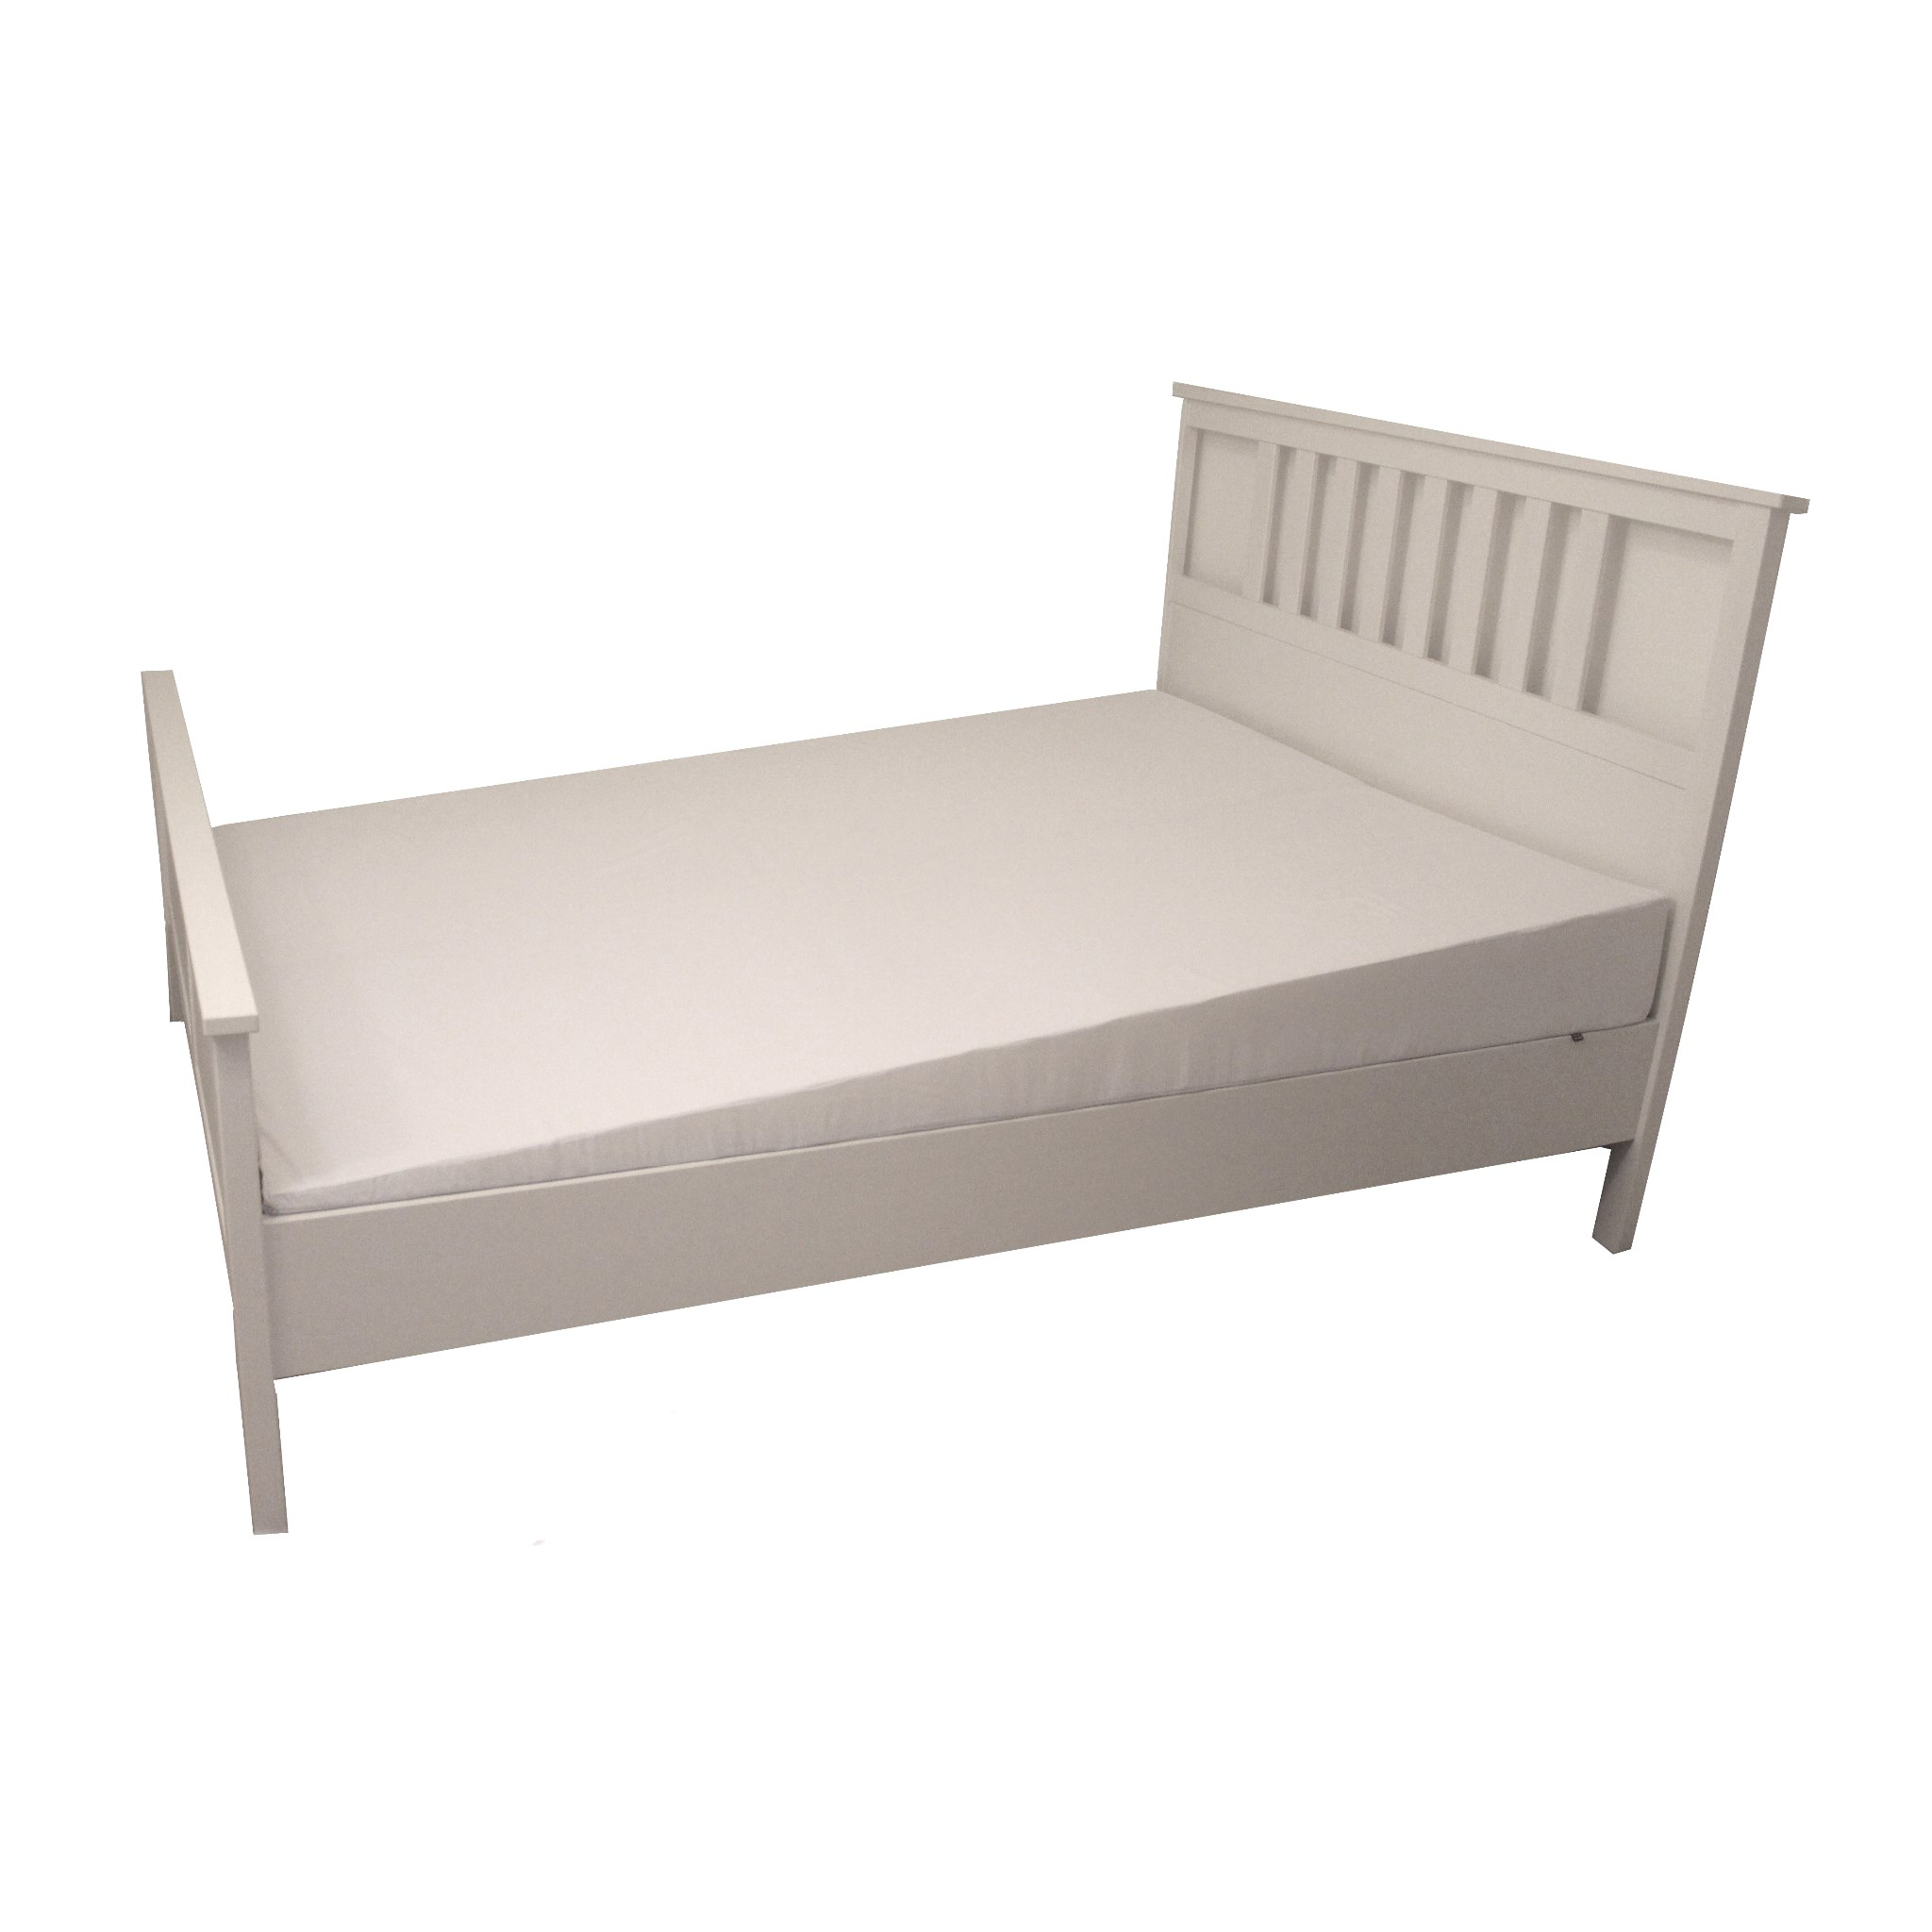 Bed Wedge Mattress Support - Inclined Bed Sleeping Surface - Made in ...